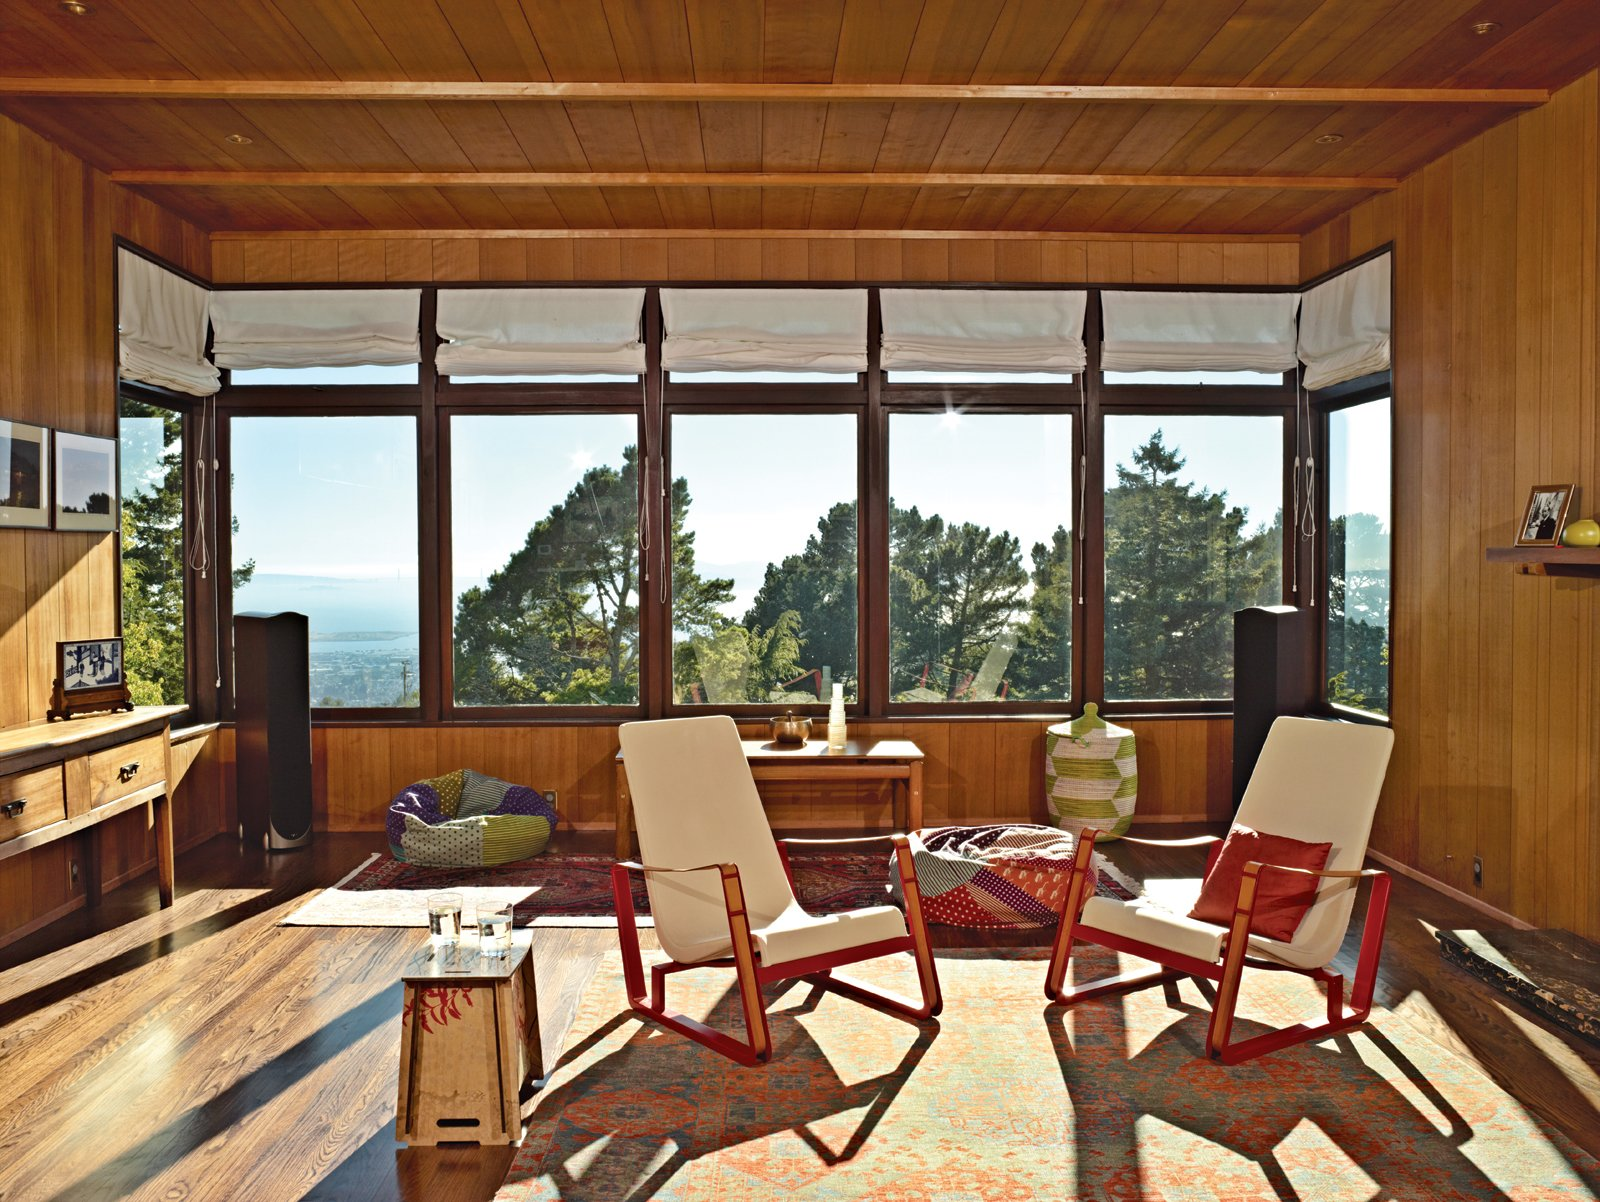 Elsewhere in the room, which Esherick sited to maximize views, are Jean Prouvé Cité chairs. Midcentury Homes by Dwell